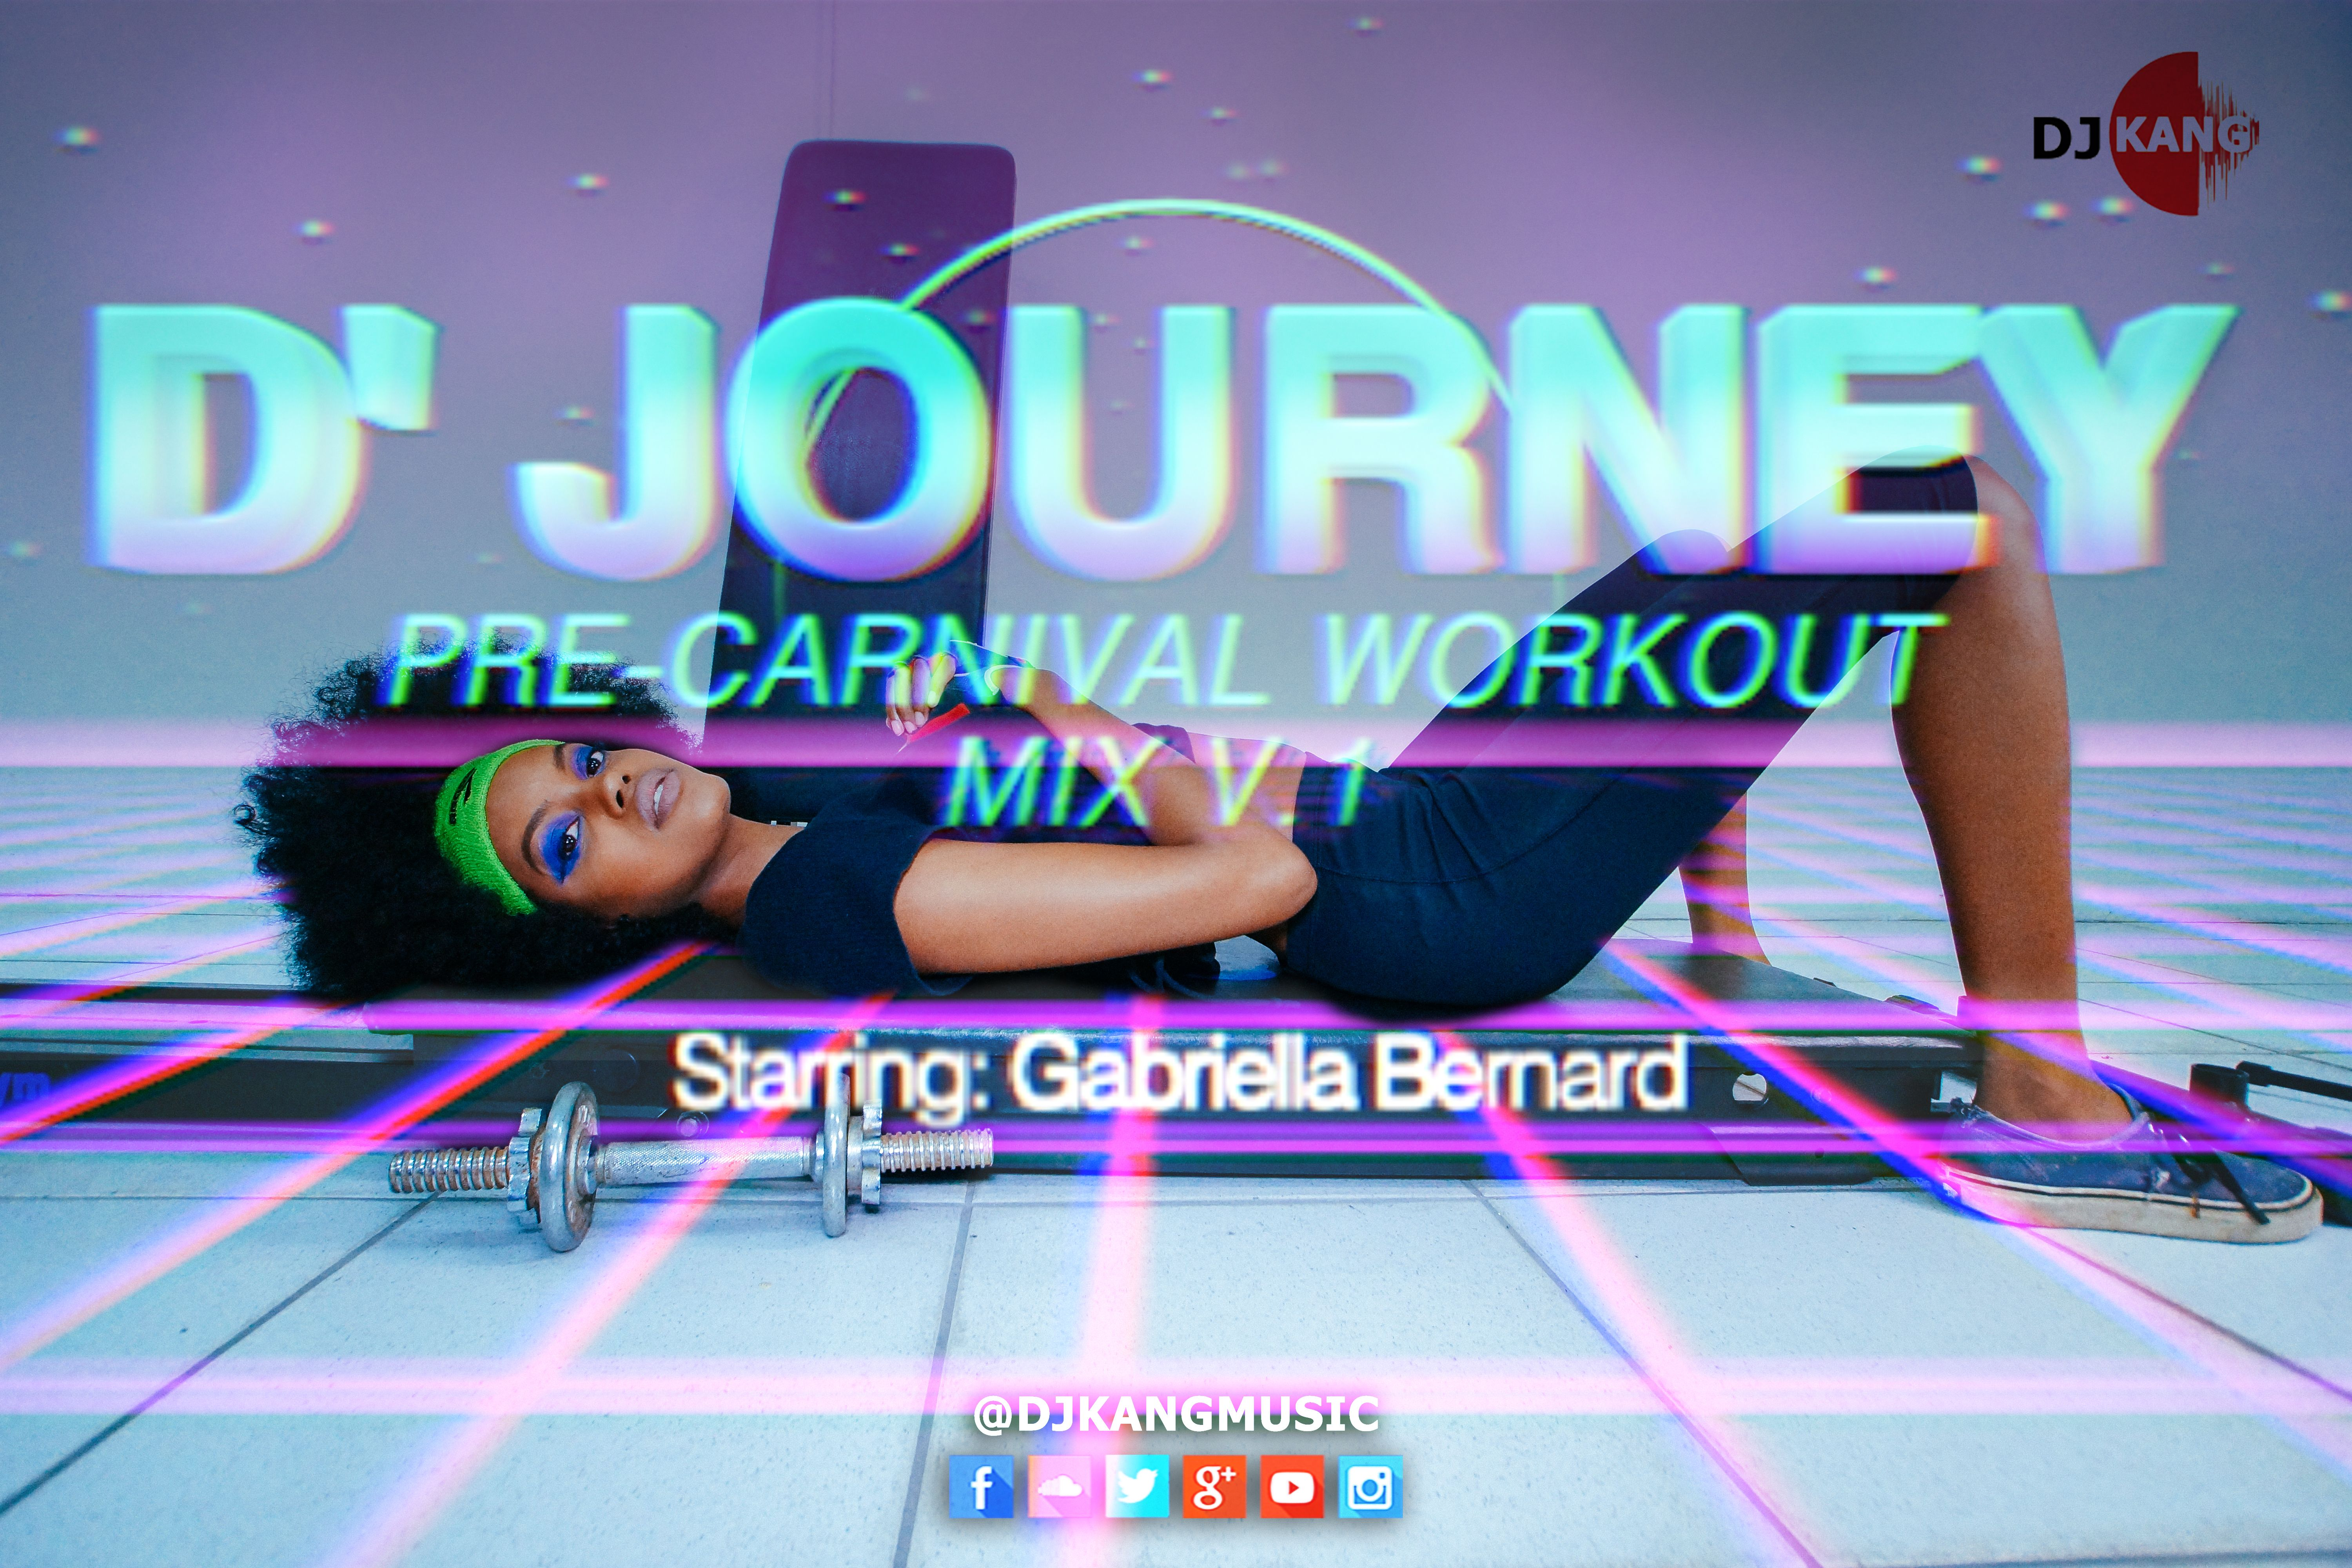 D'Journey Pre-Carnival Workout Mix V 1 Soca workout mix to get your